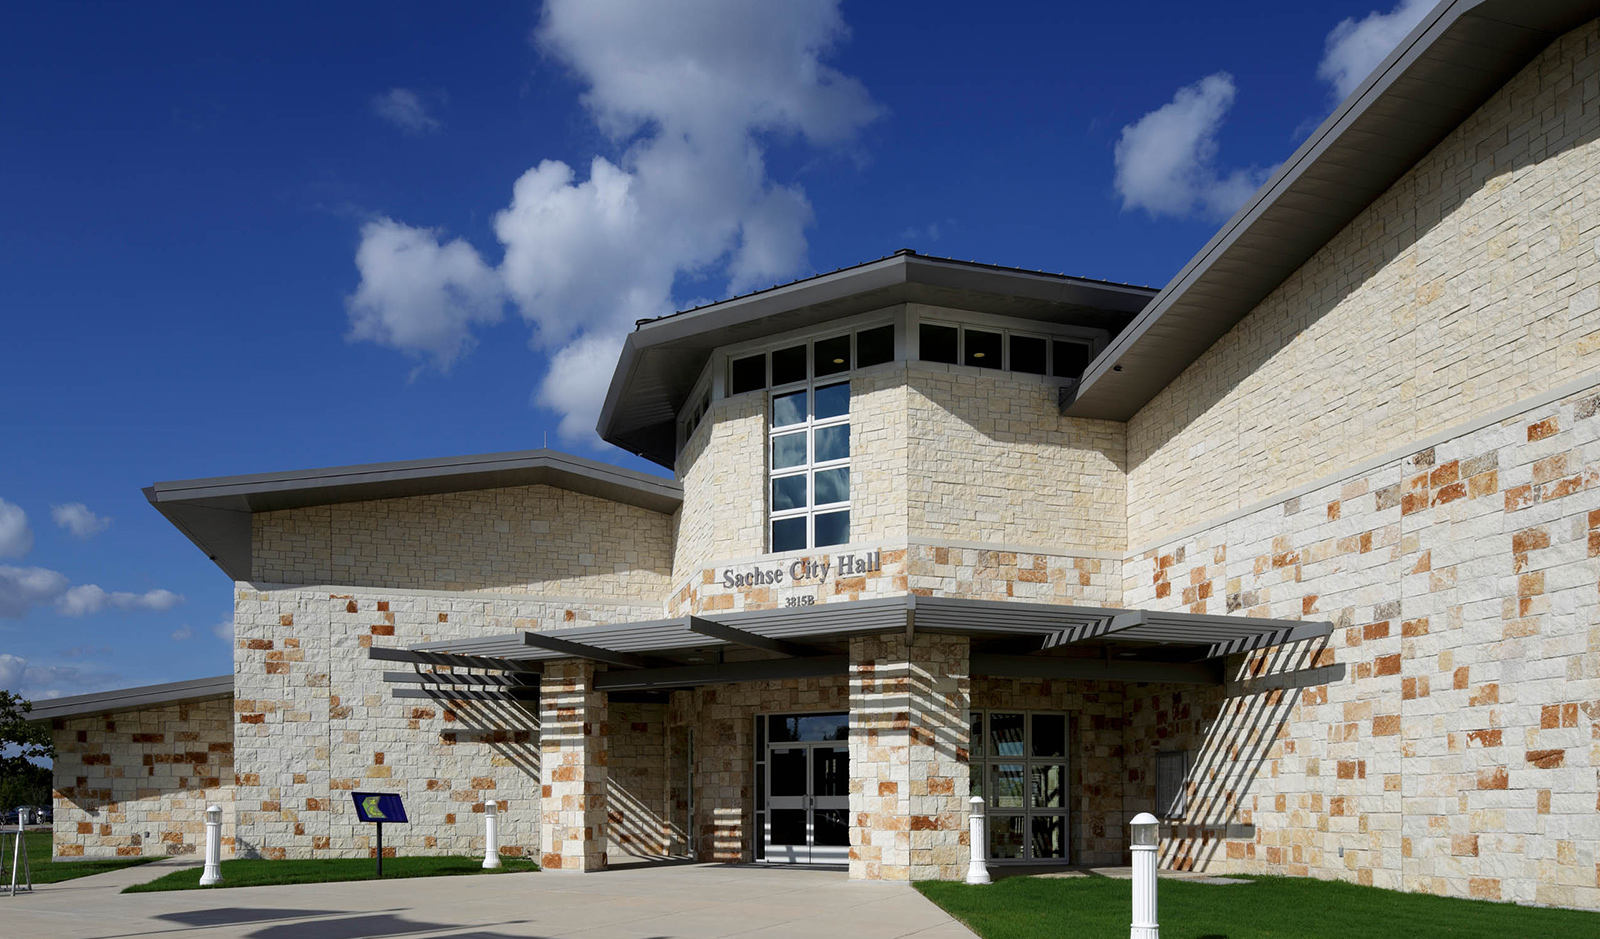 City of Sachse   Municipal Campus